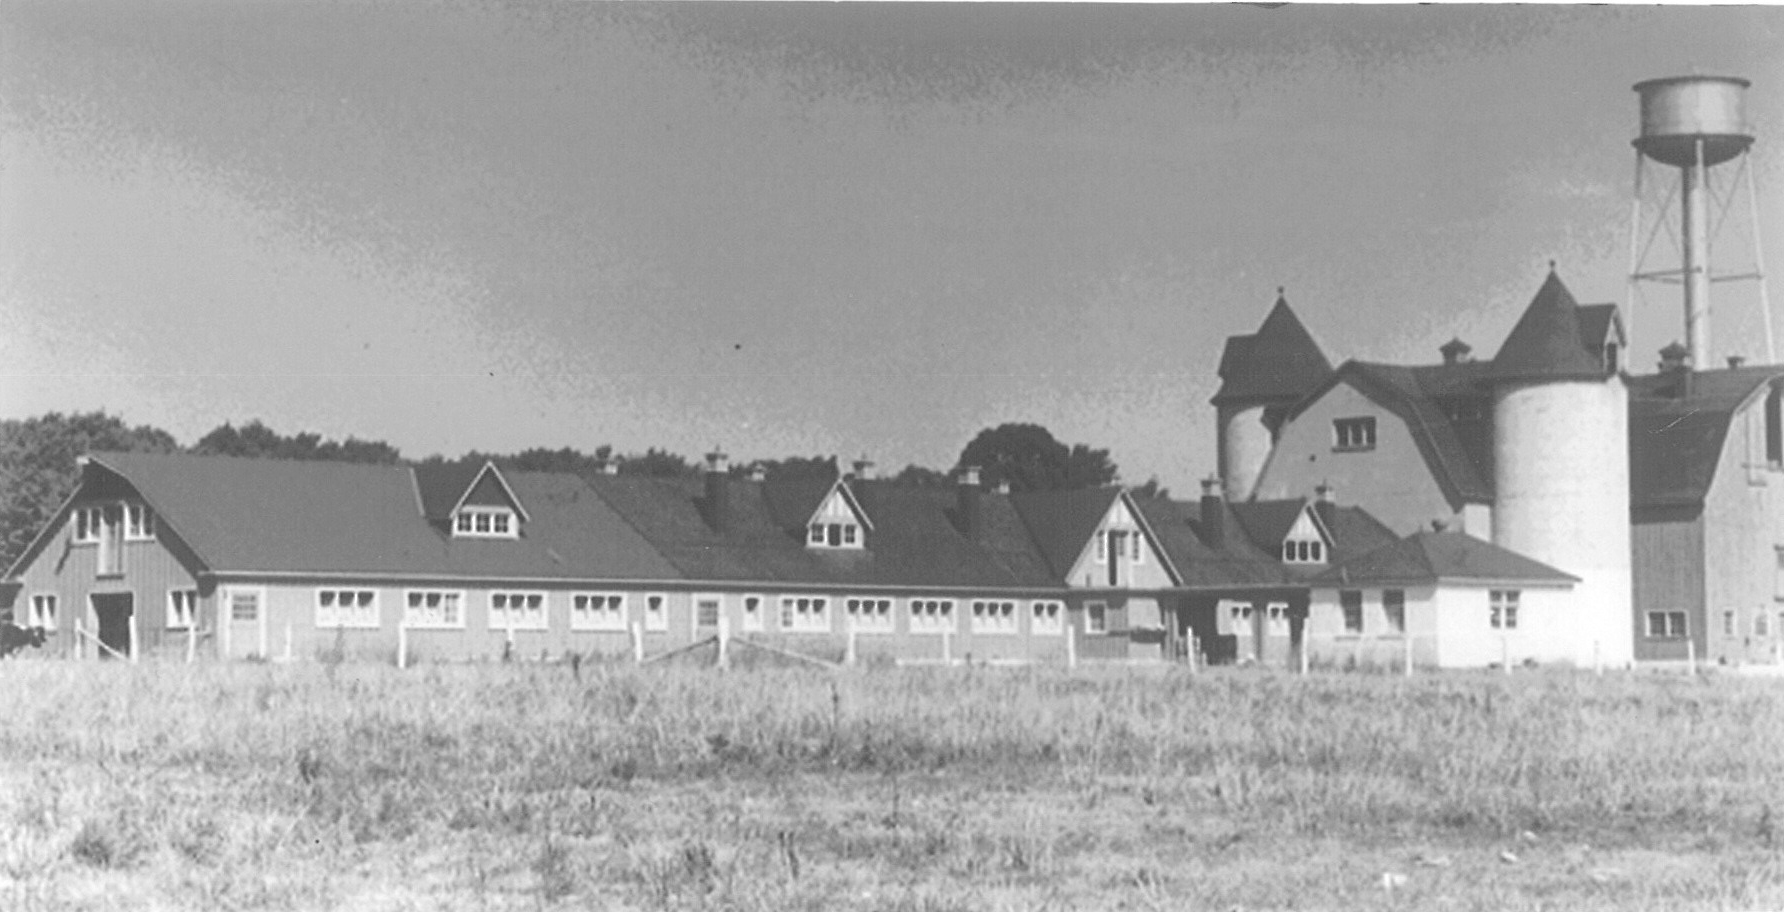 Orillia institution farm, today the site of the OPP. Photo courtesy Archives of Ontario.